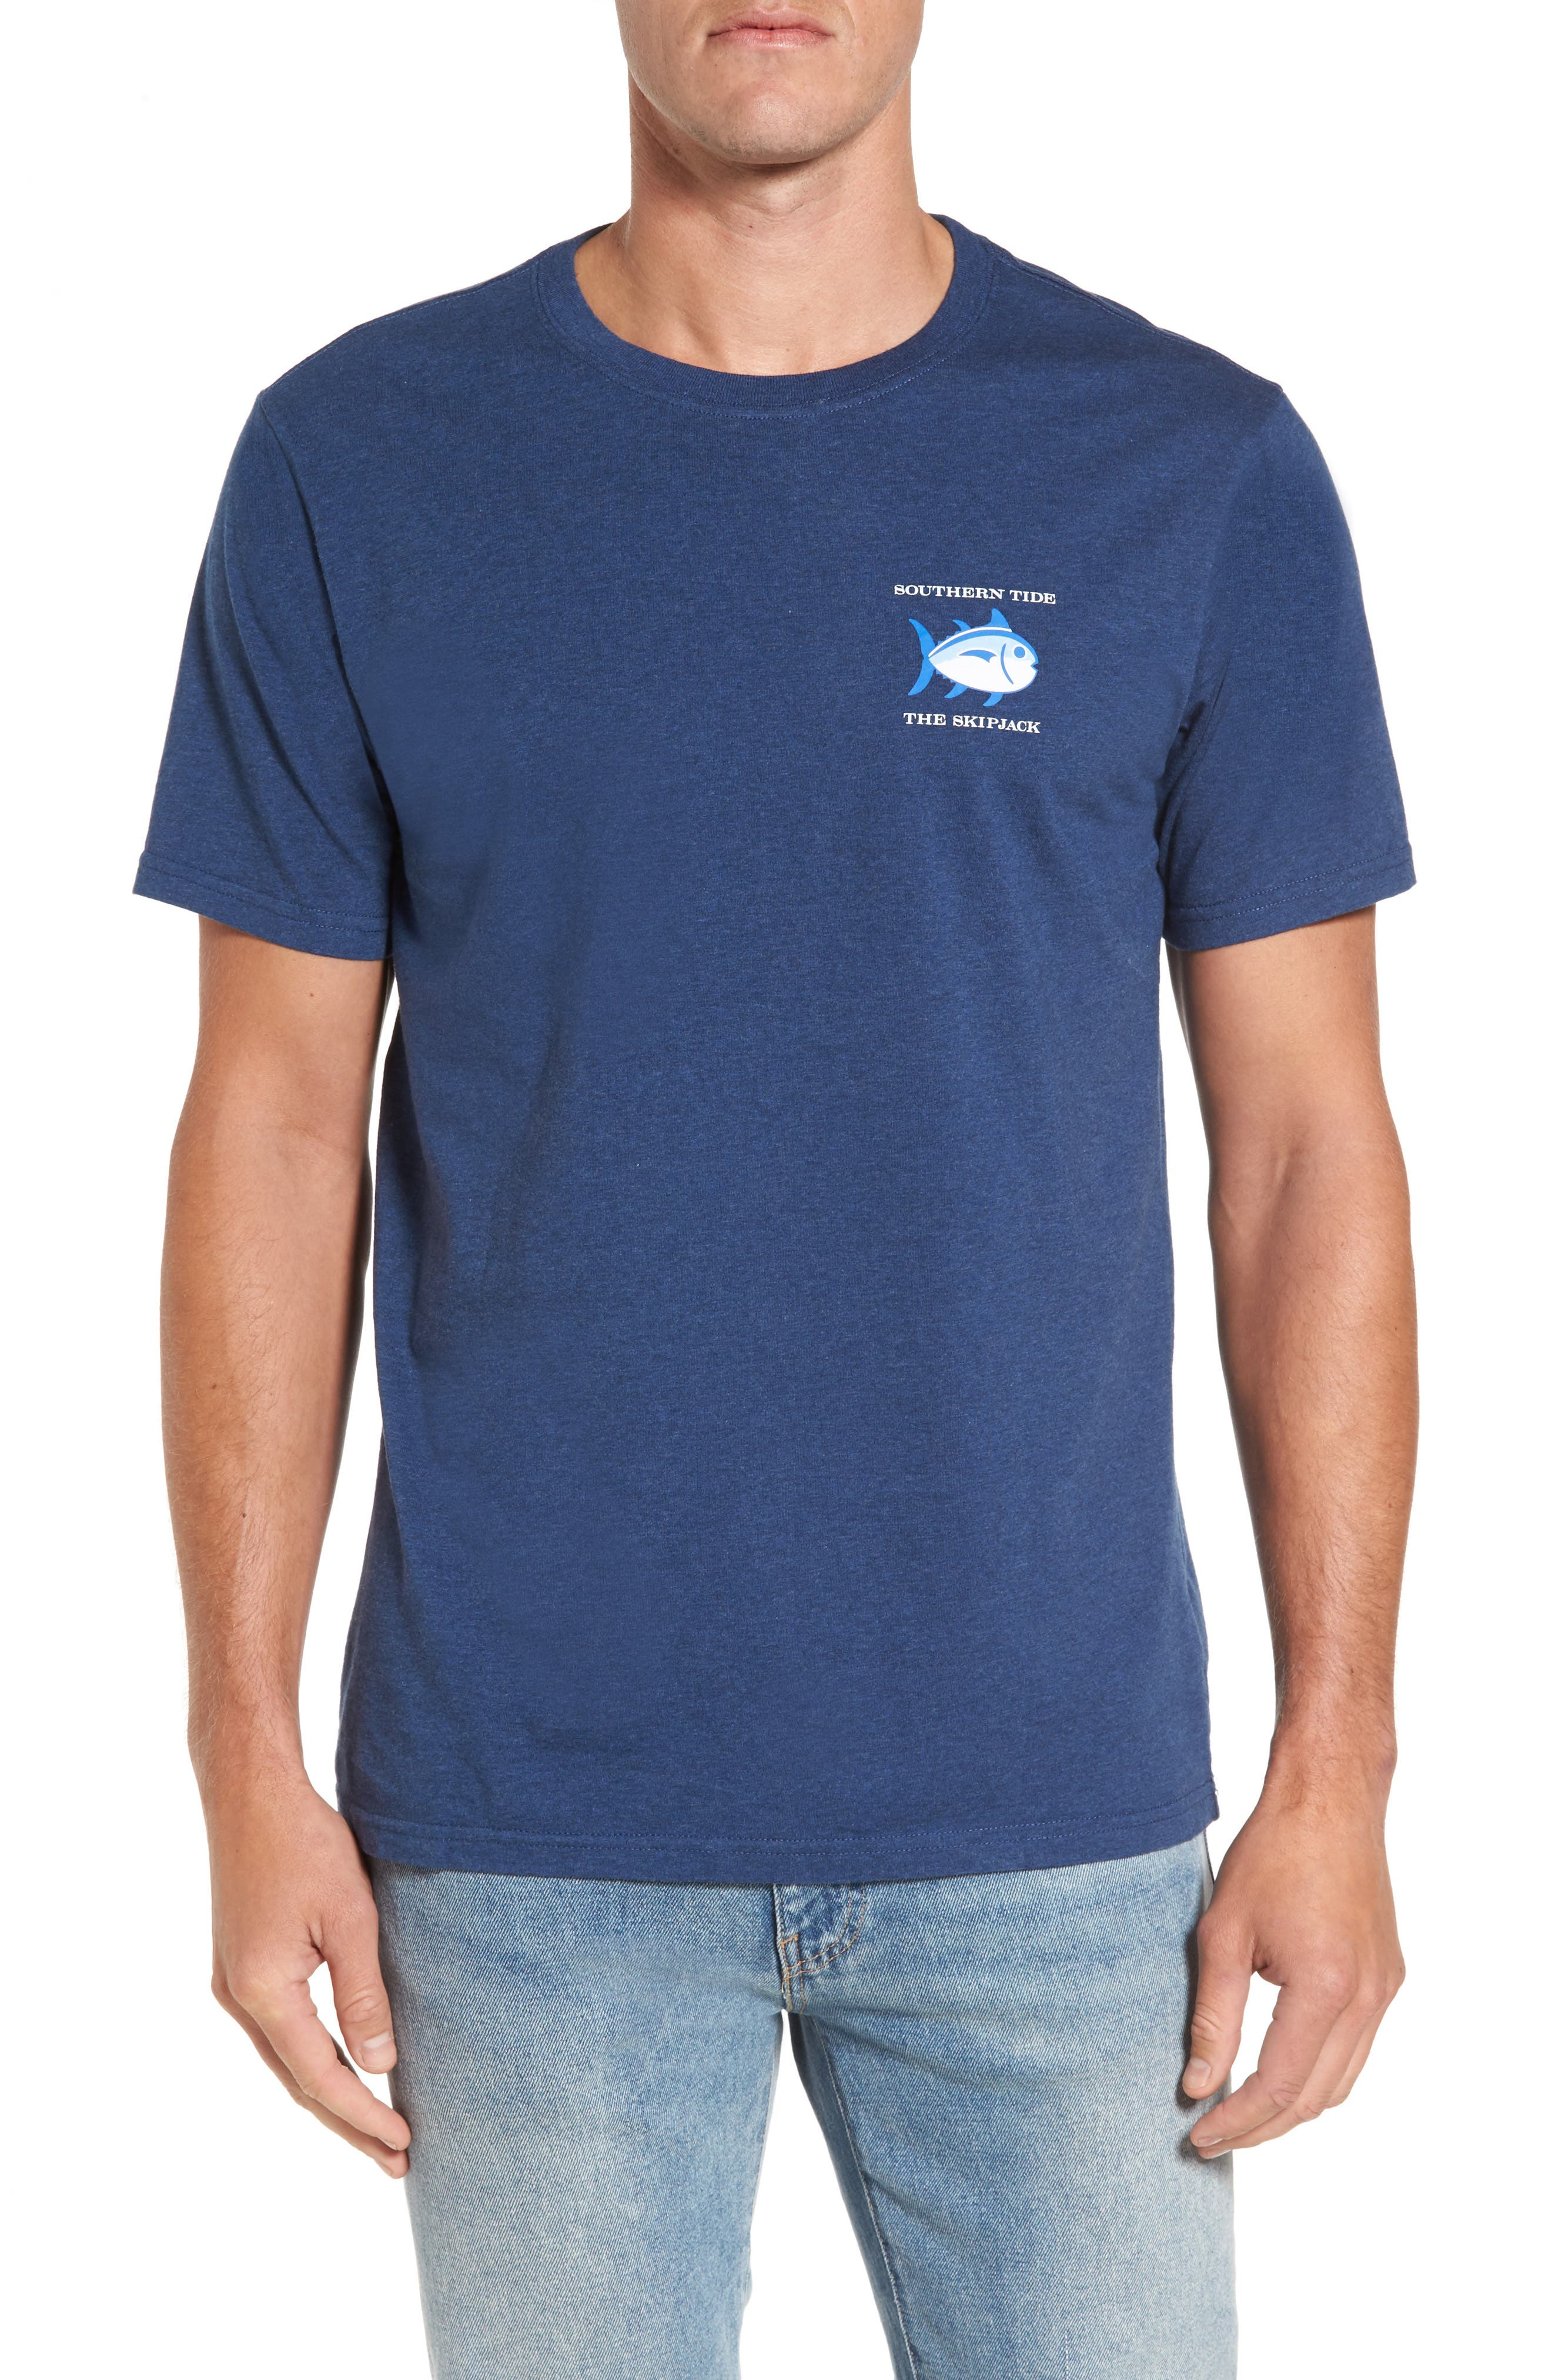 Southern Tide Original Graphic T-Shirt